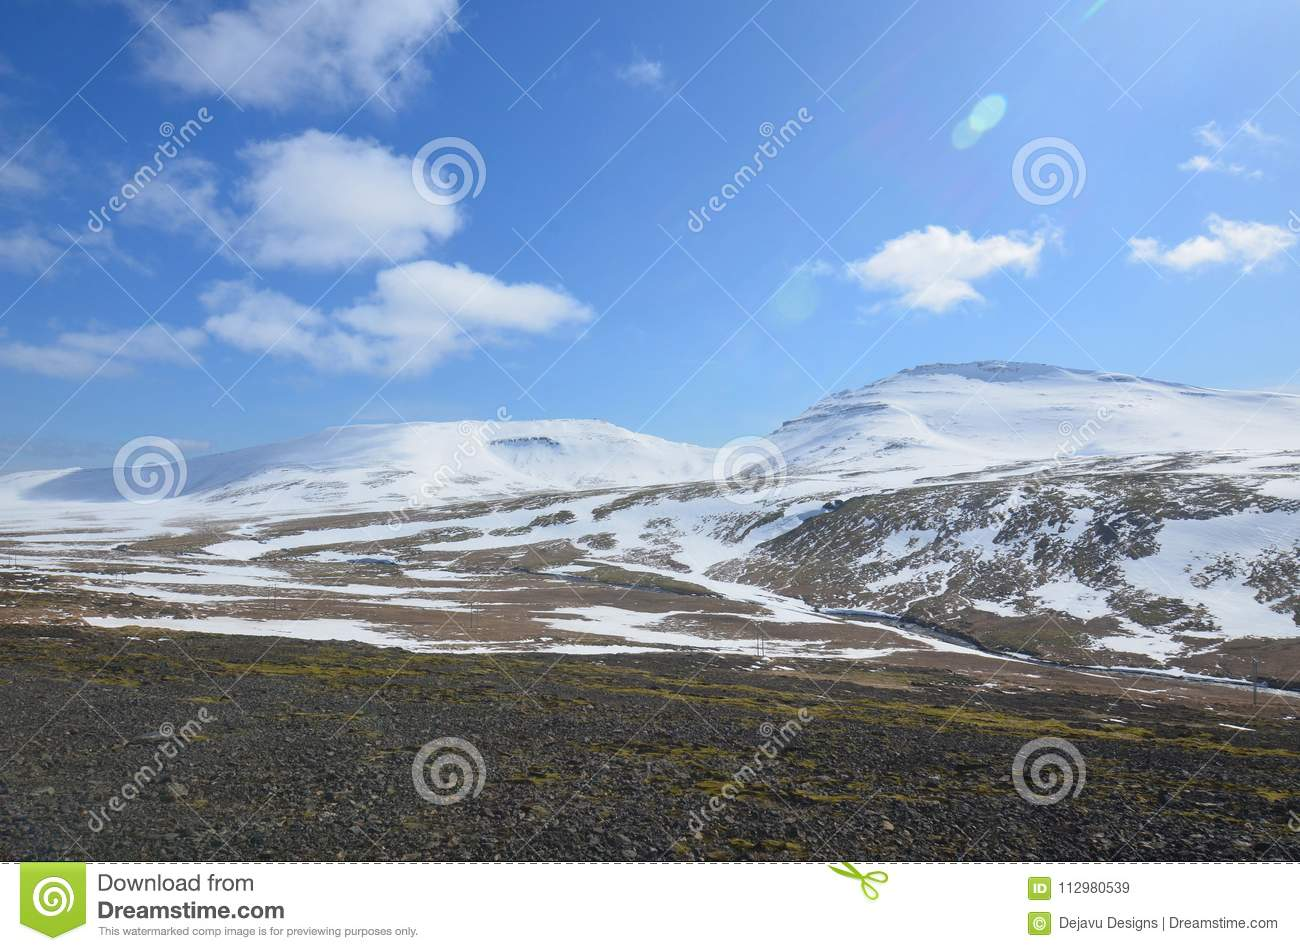 Snow Capped Mountains and Glaciers in West Iceland